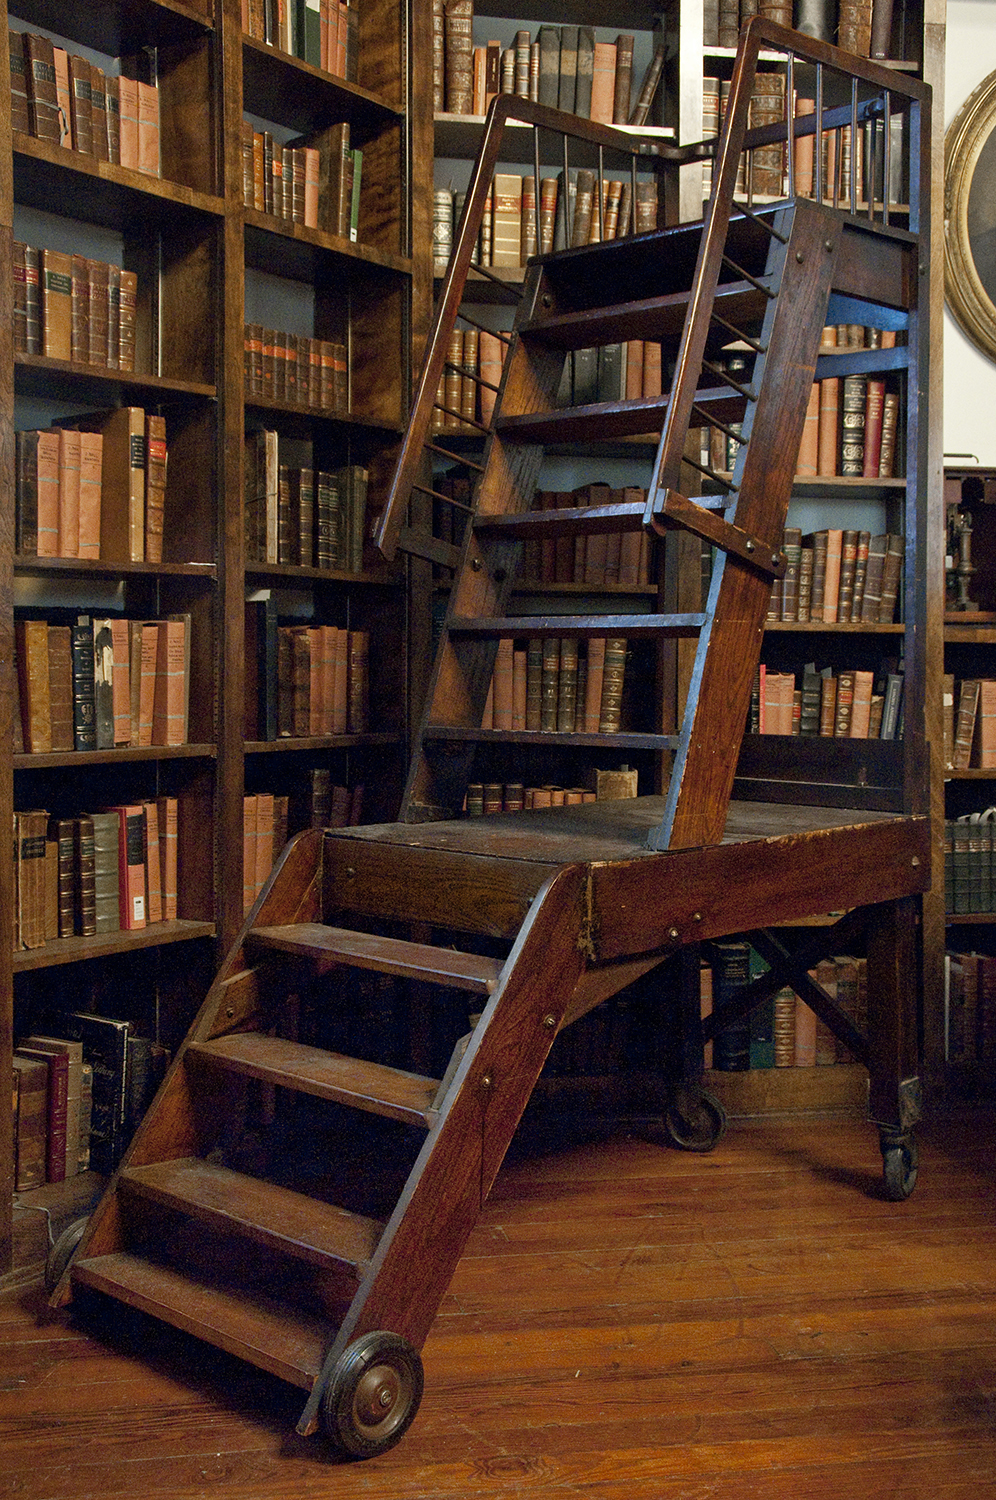 Second Floor Bookshelf Ladder